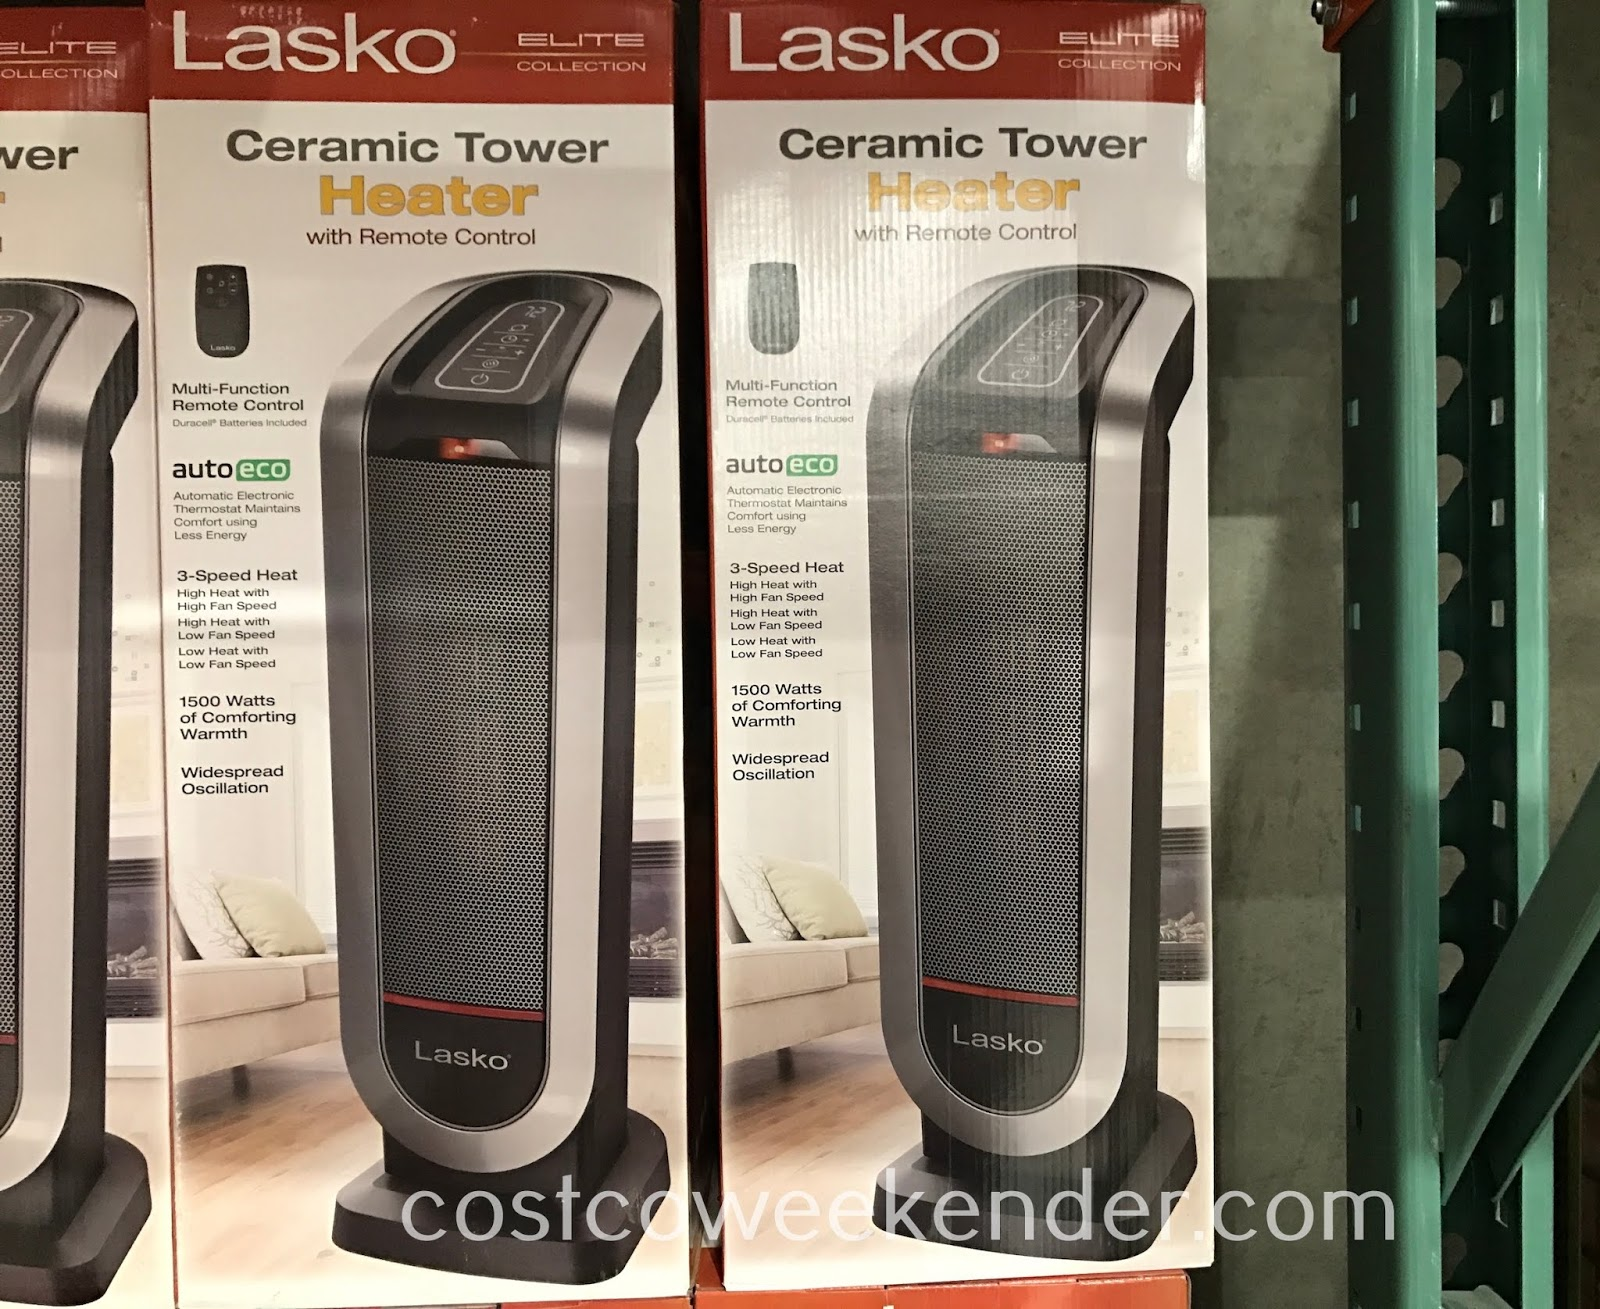 Winter is coming, so get the warmth you need with the Lasko Ceramic Tower Heater